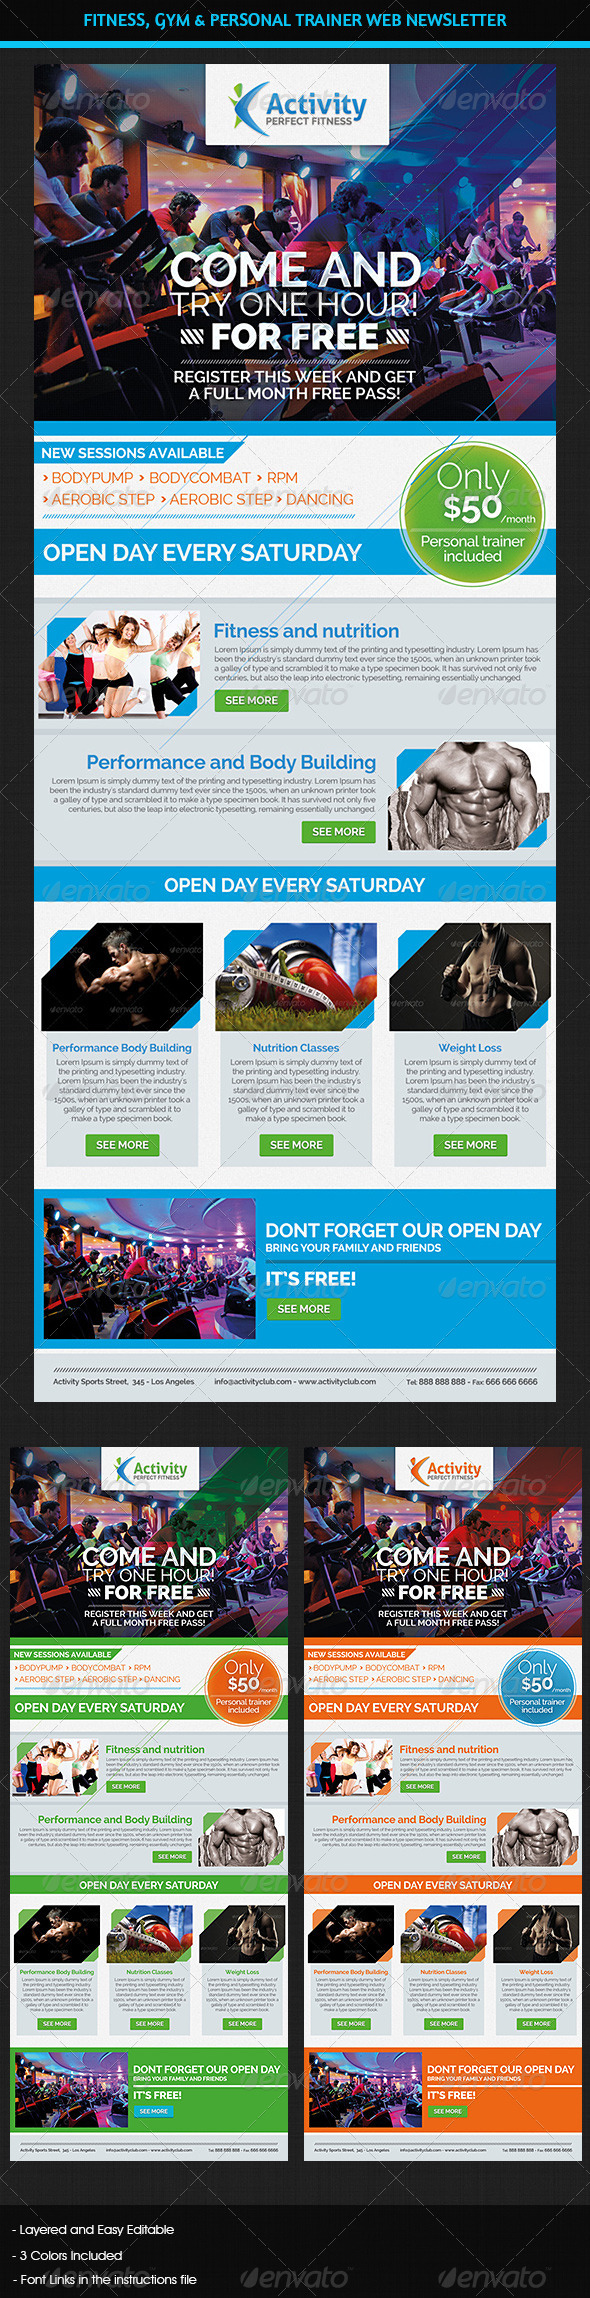 GraphicRiver Fitness Gym & Personal Trainer Web Newsletter 7143821